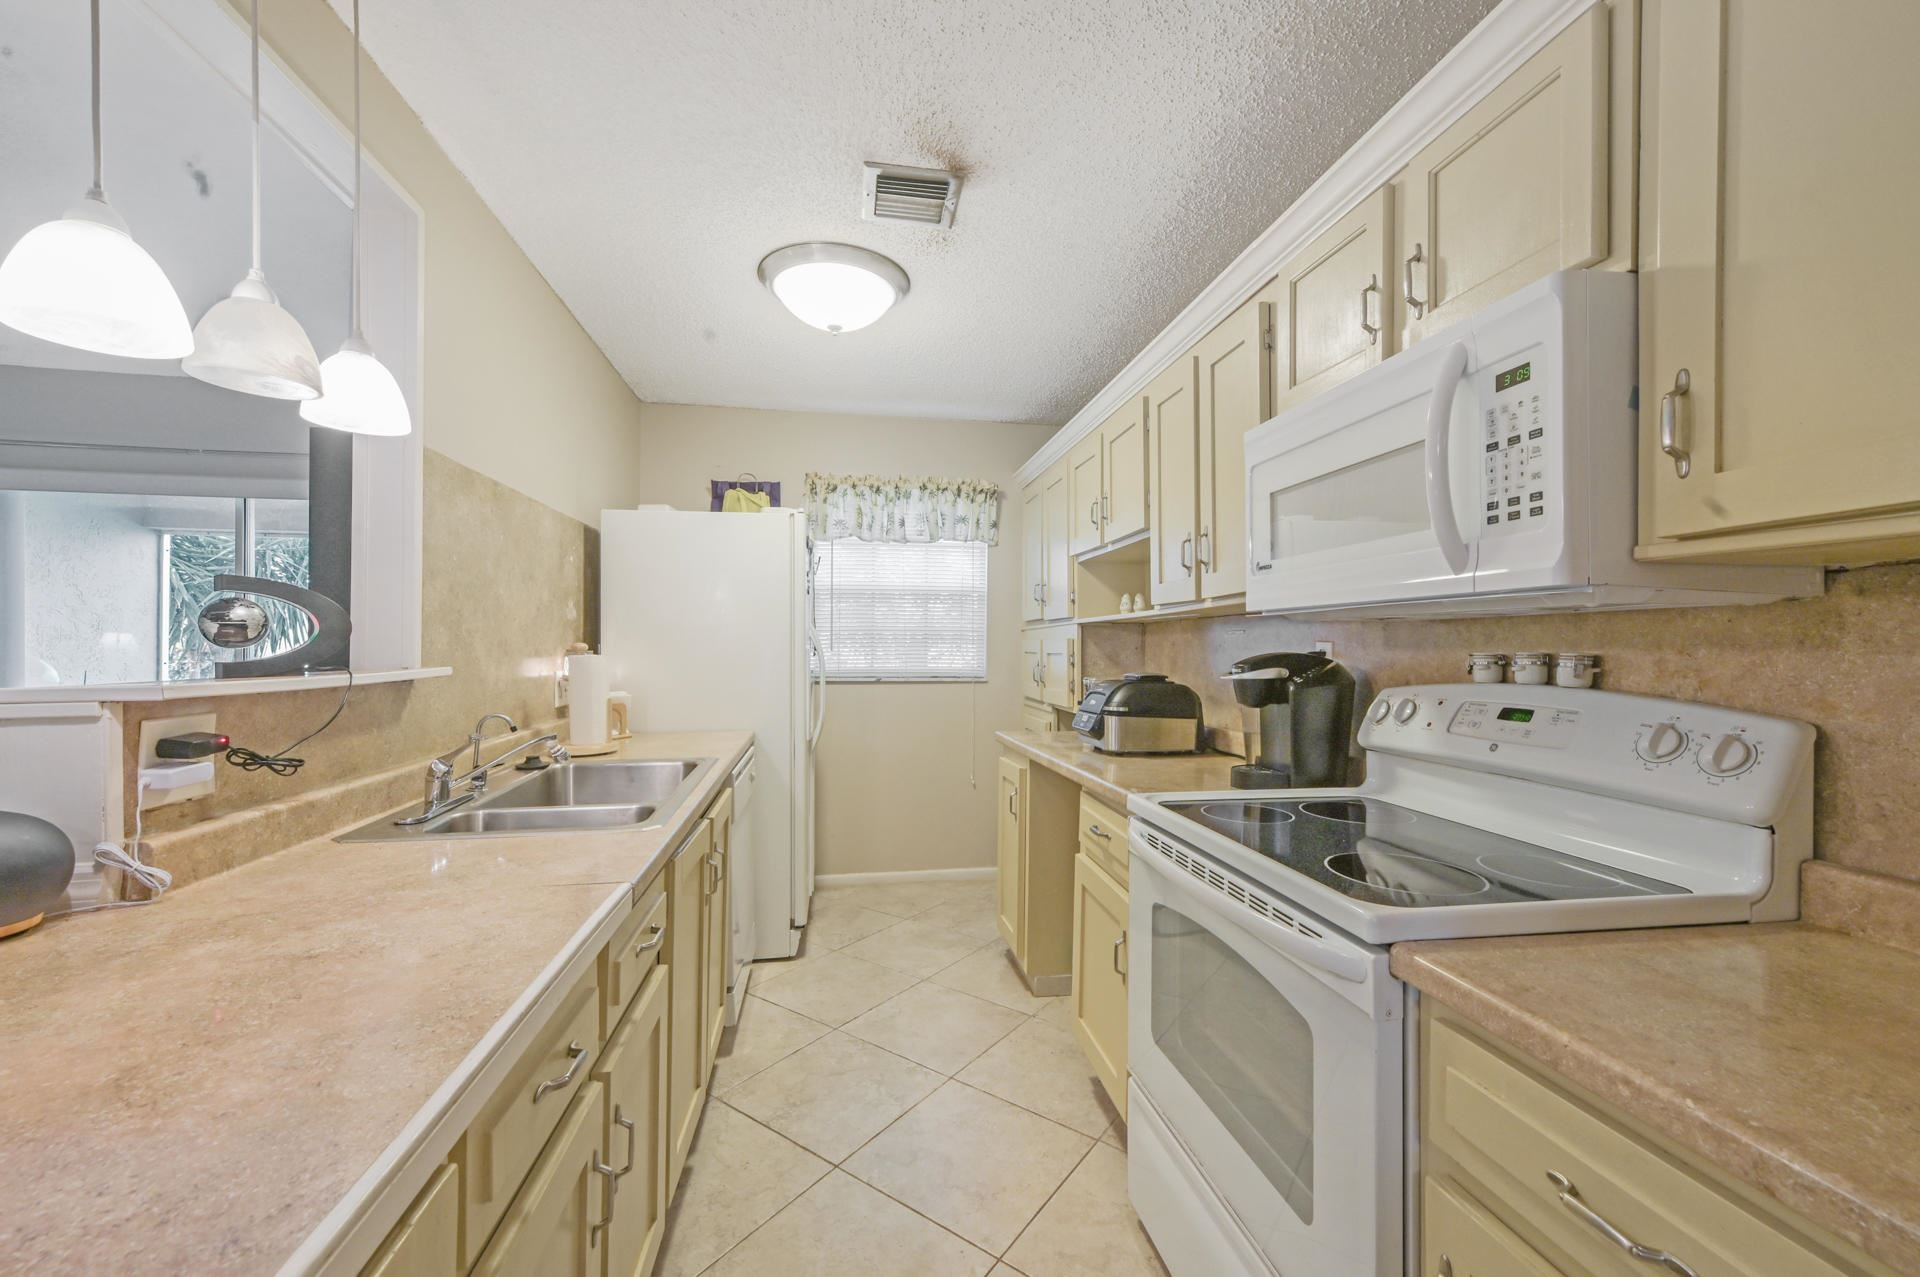 Photo of 14660 Canalview C Drive #C, Delray Beach, FL 33484 (MLS # RX-10733256)